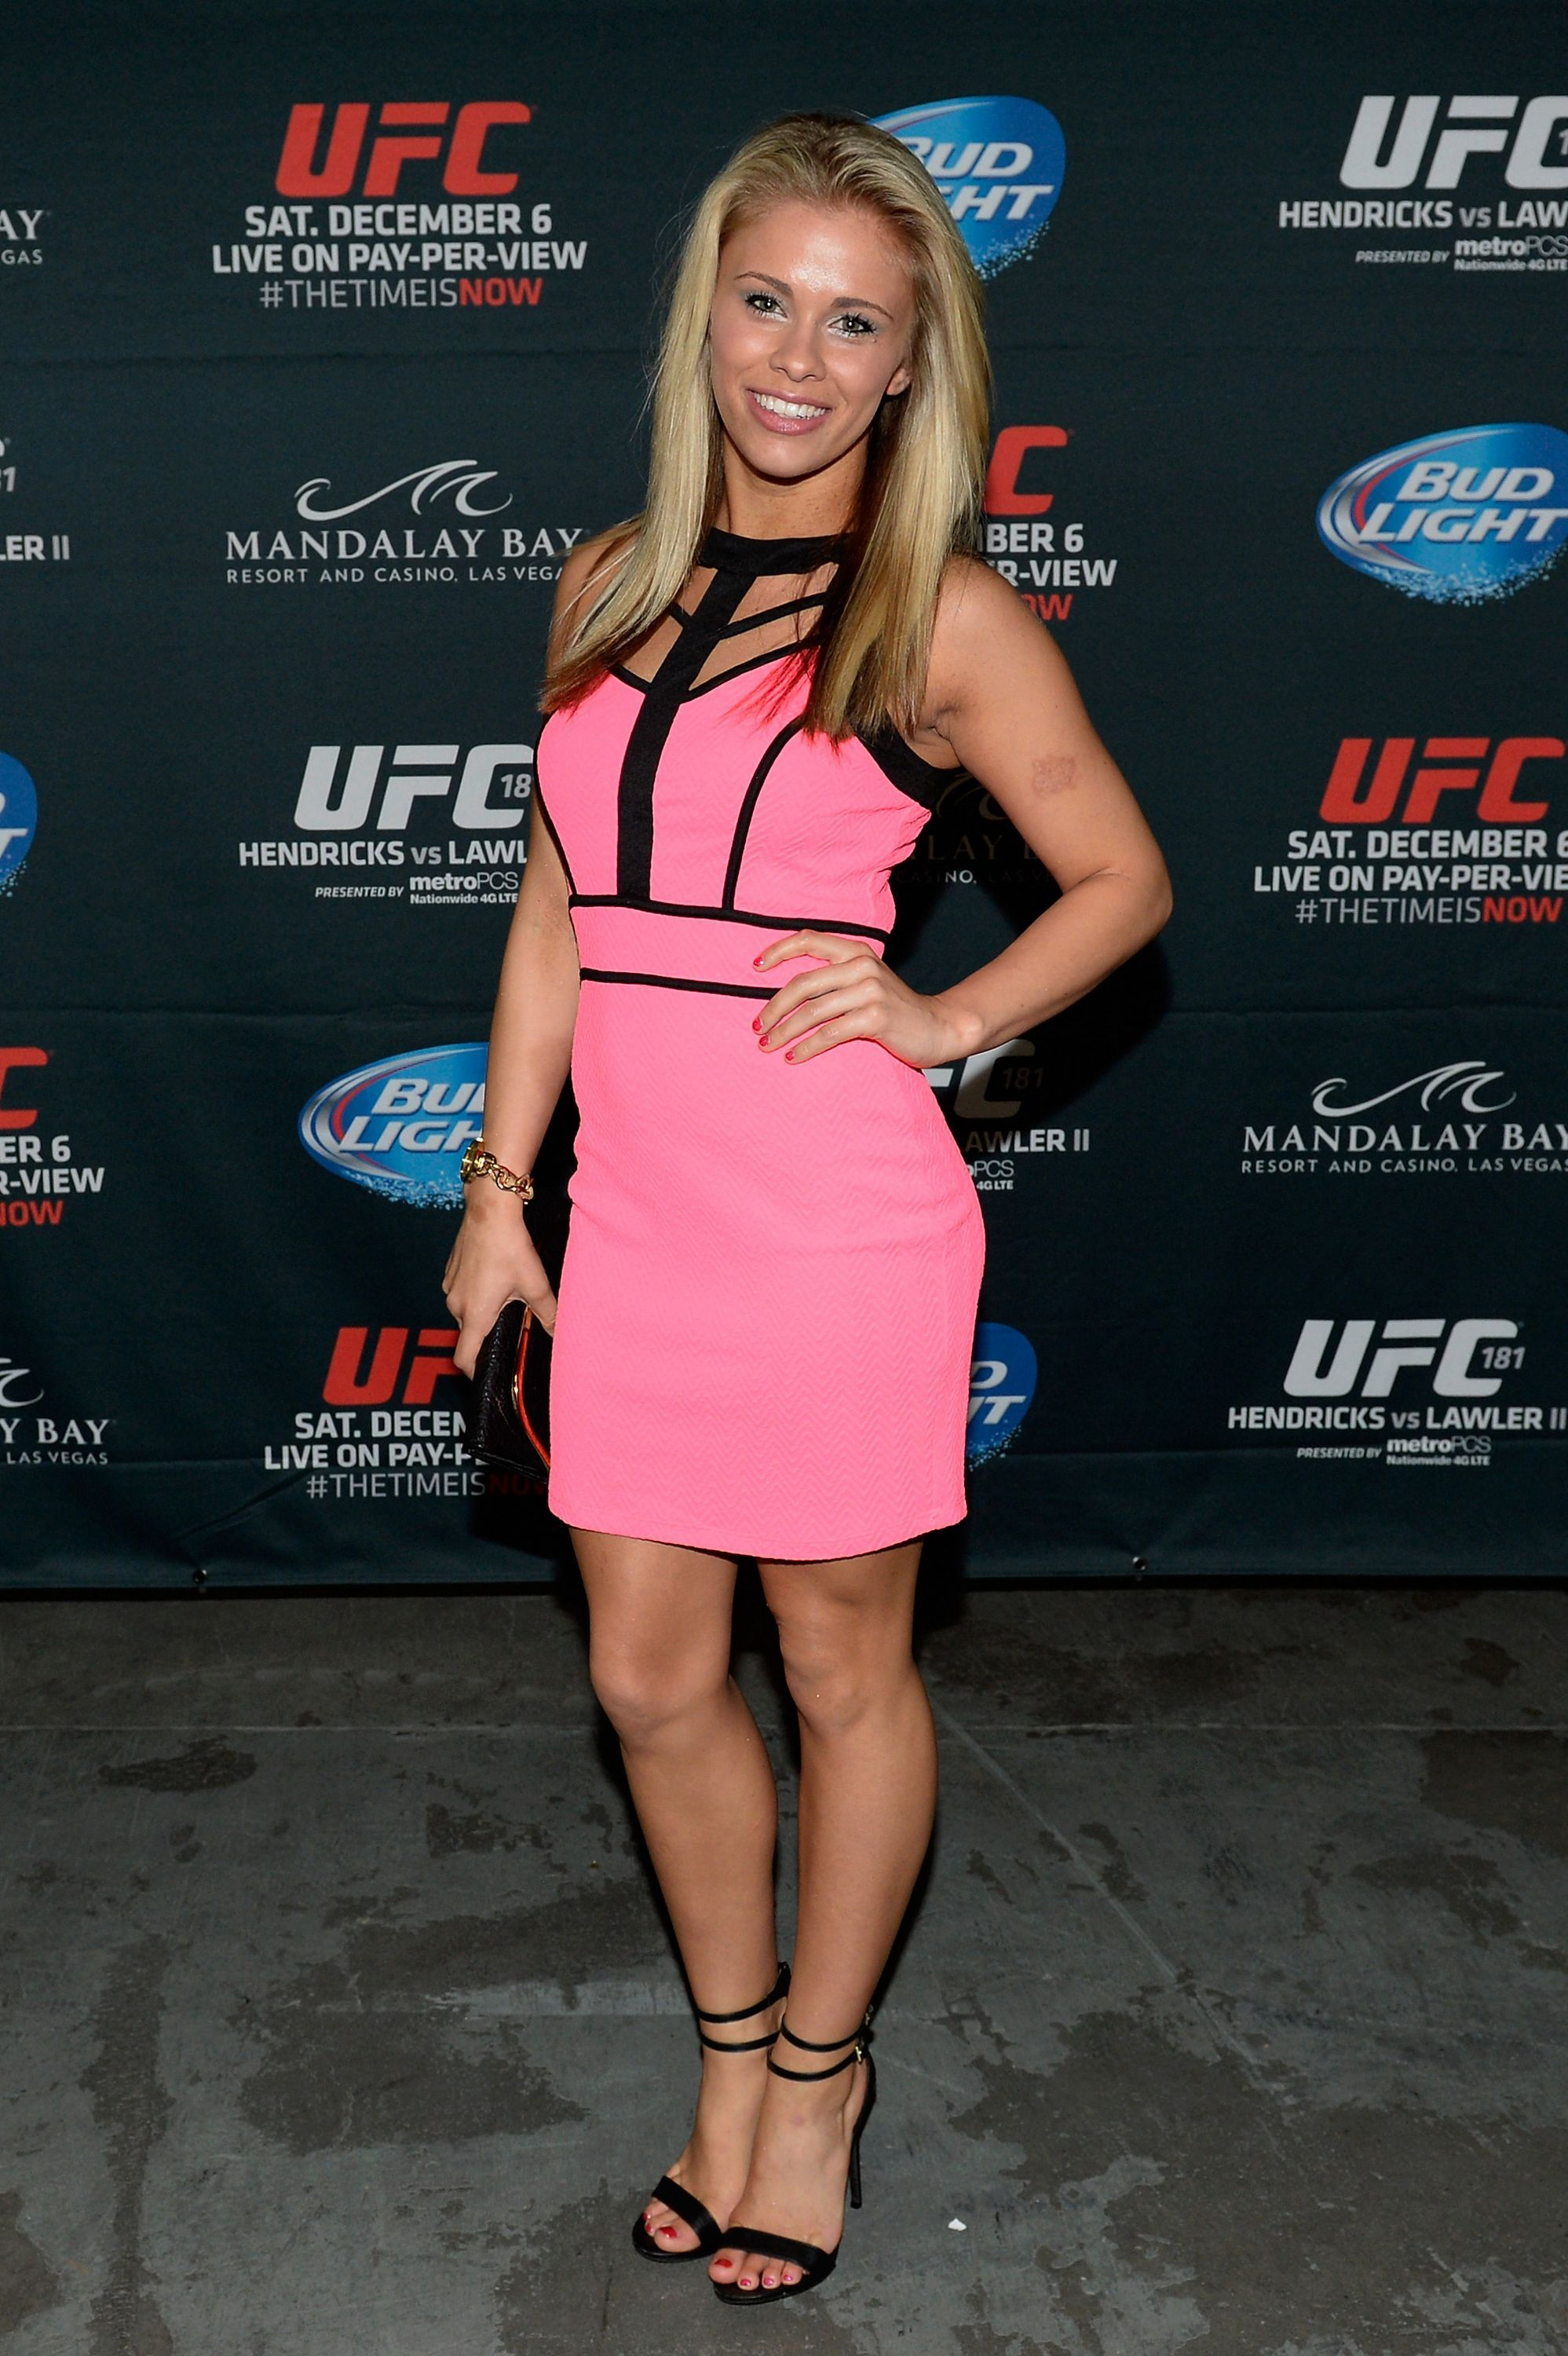 Paige VanZant Hottest Pictures, Sexy Photos & Videos